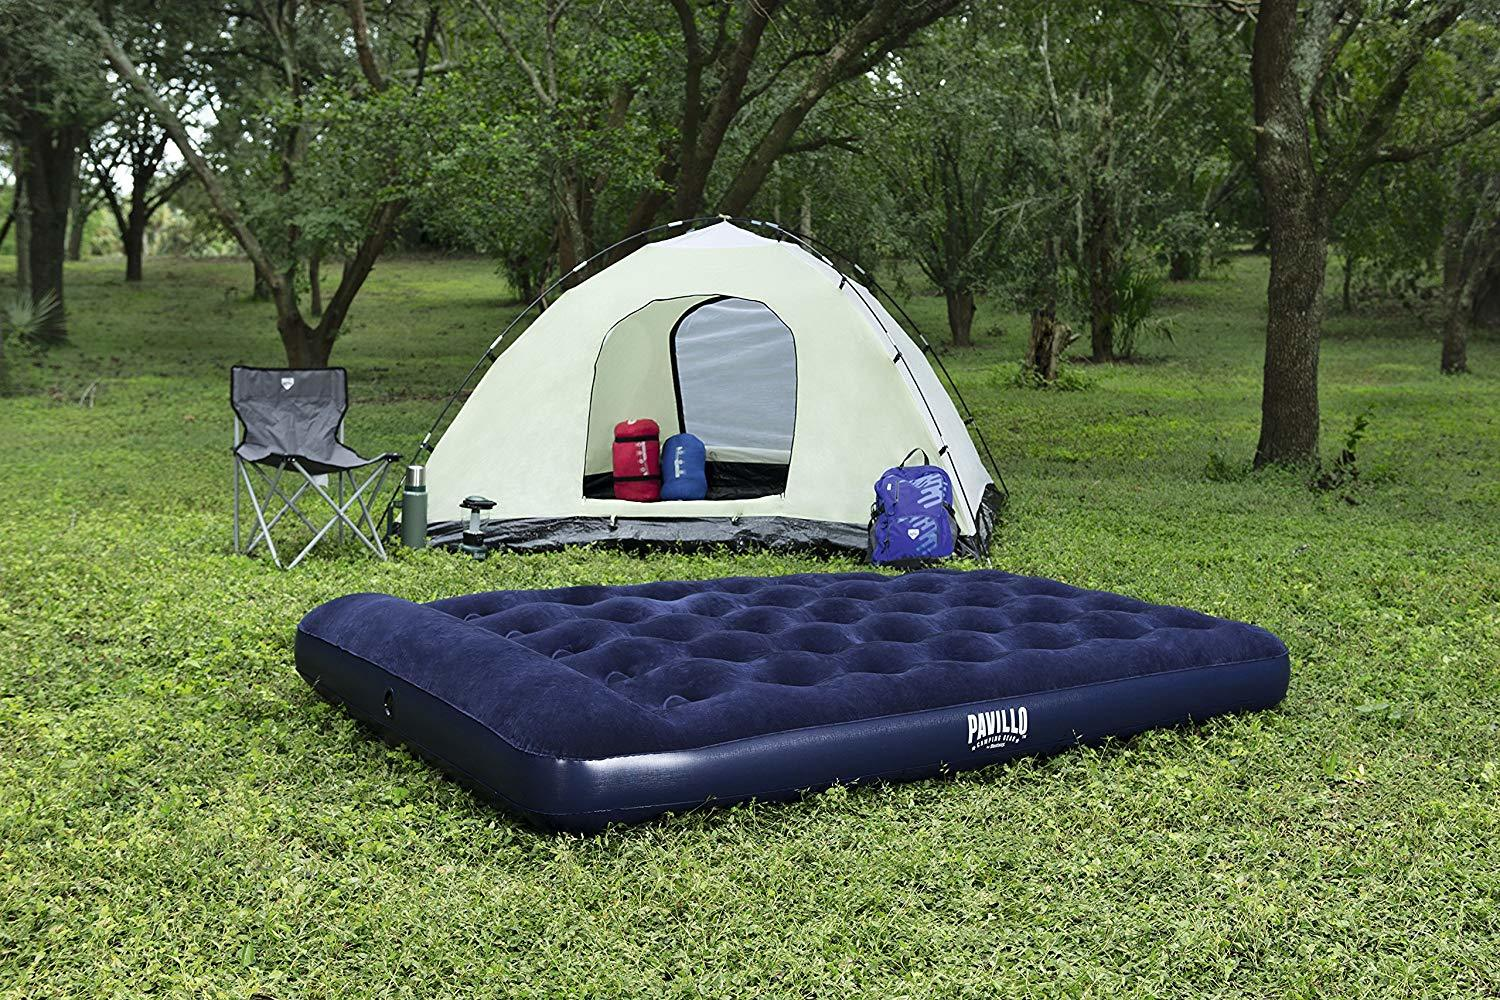 Bestway Pavillo Easy-Inflate Airbed with Built-In Foot Pump - Double